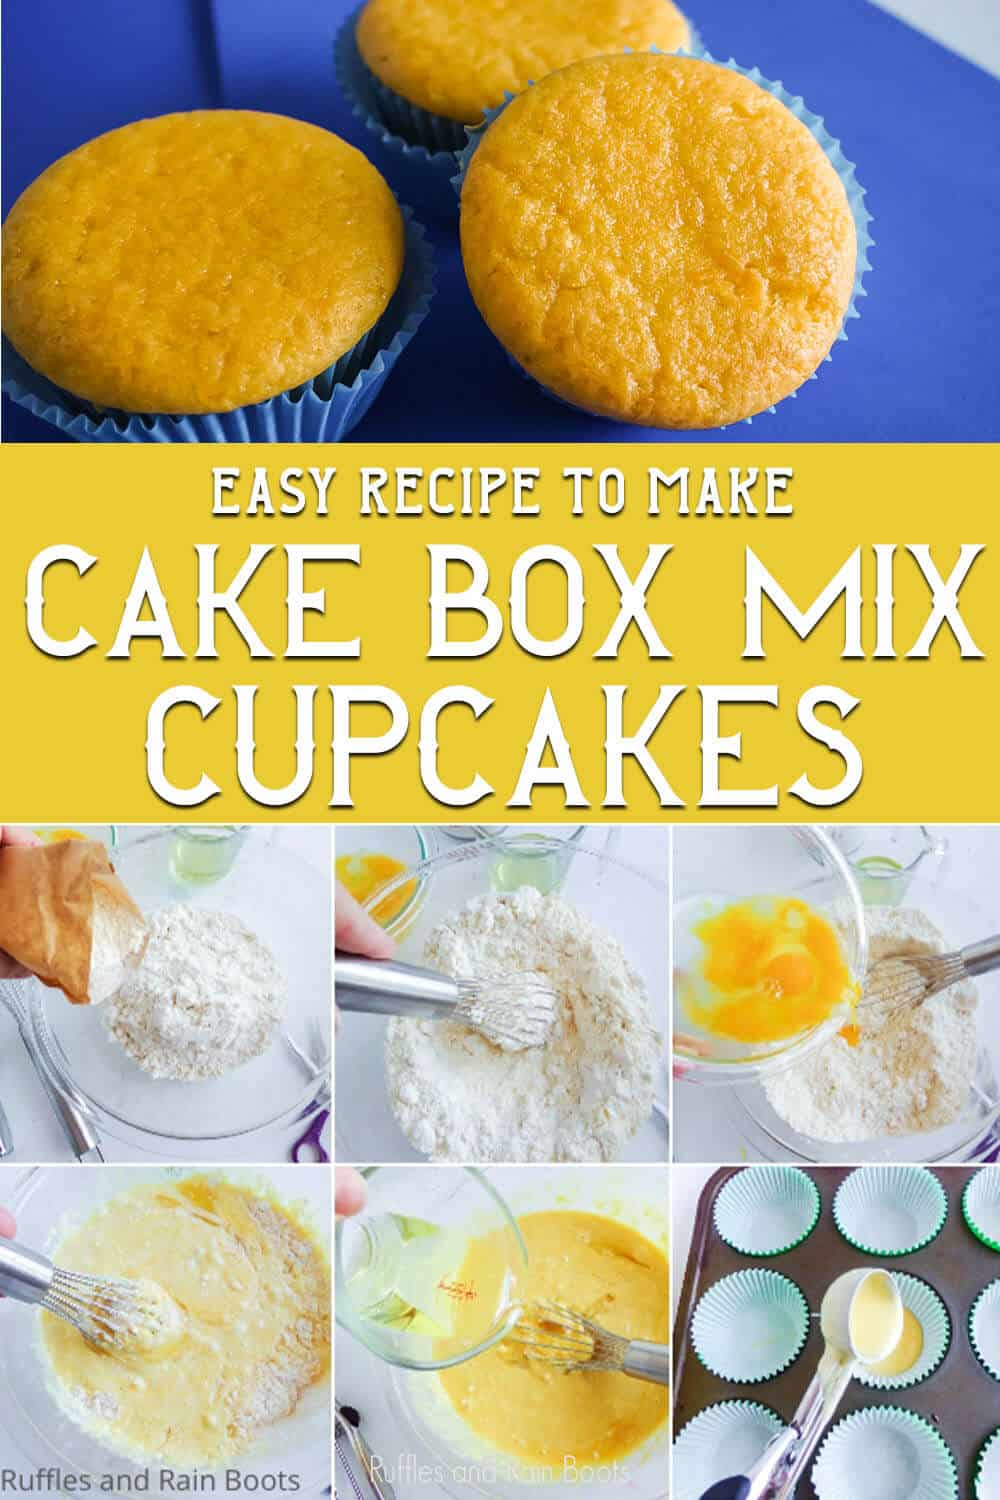 photo collage of easy cupcakes made with a cake box mix with text which reads easy recipe to make cake box mix cupcakes